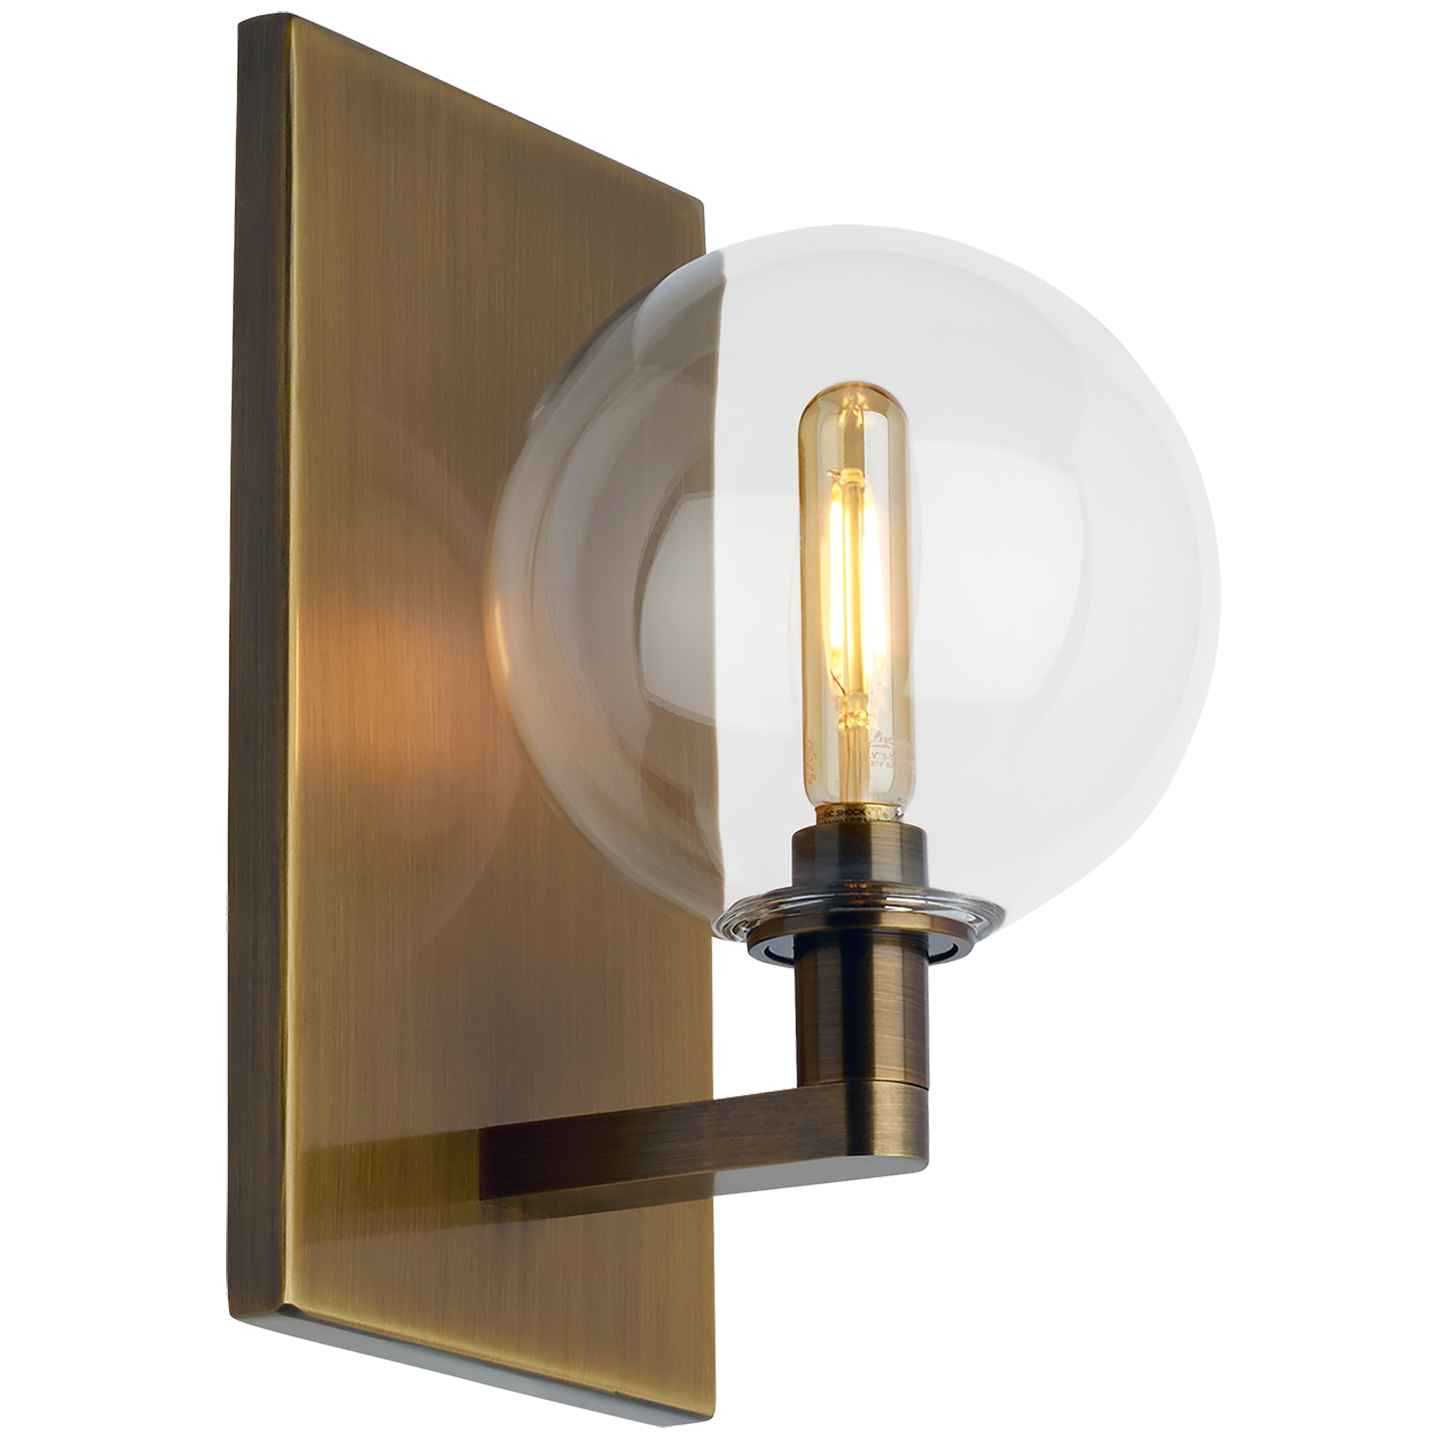 Gambit Single Wall Sconce Wall Lights Led Wall Lights Led Wall Sconce